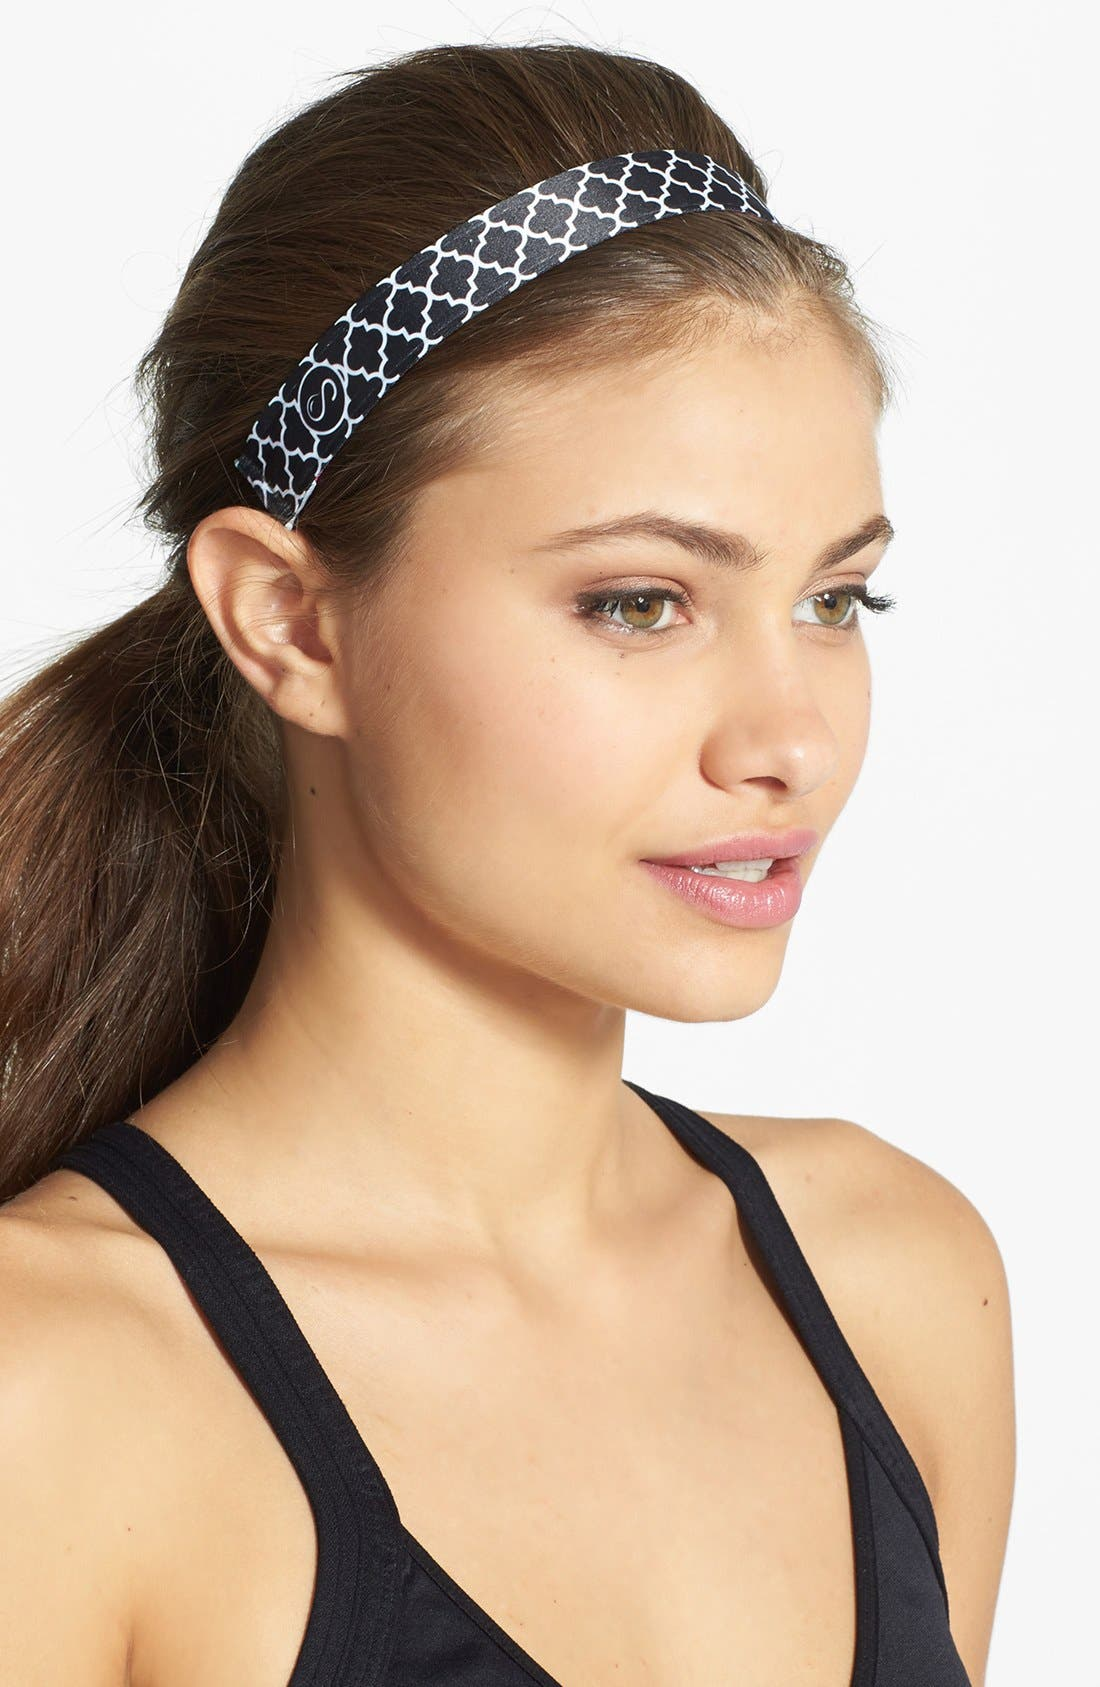 Alternate Image 1 Selected - Sweaty Bands 'Moroccan My World' Fitness Head Wrap